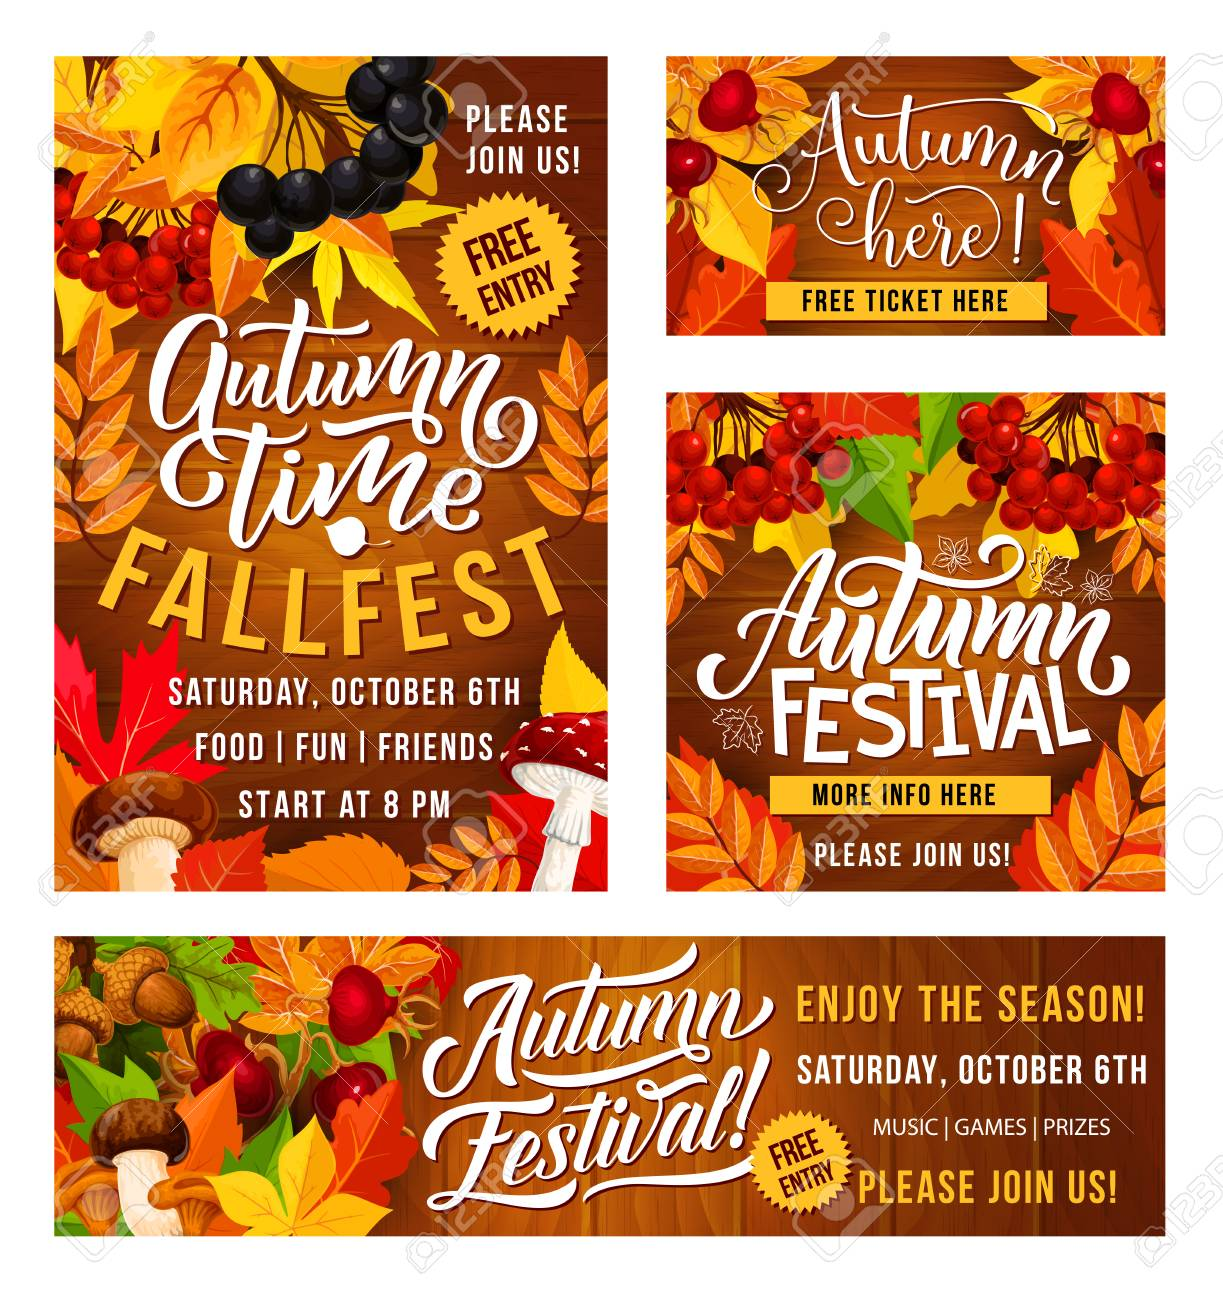 Thanksgiving Day Fall Fest Invitation Posters For Traditional